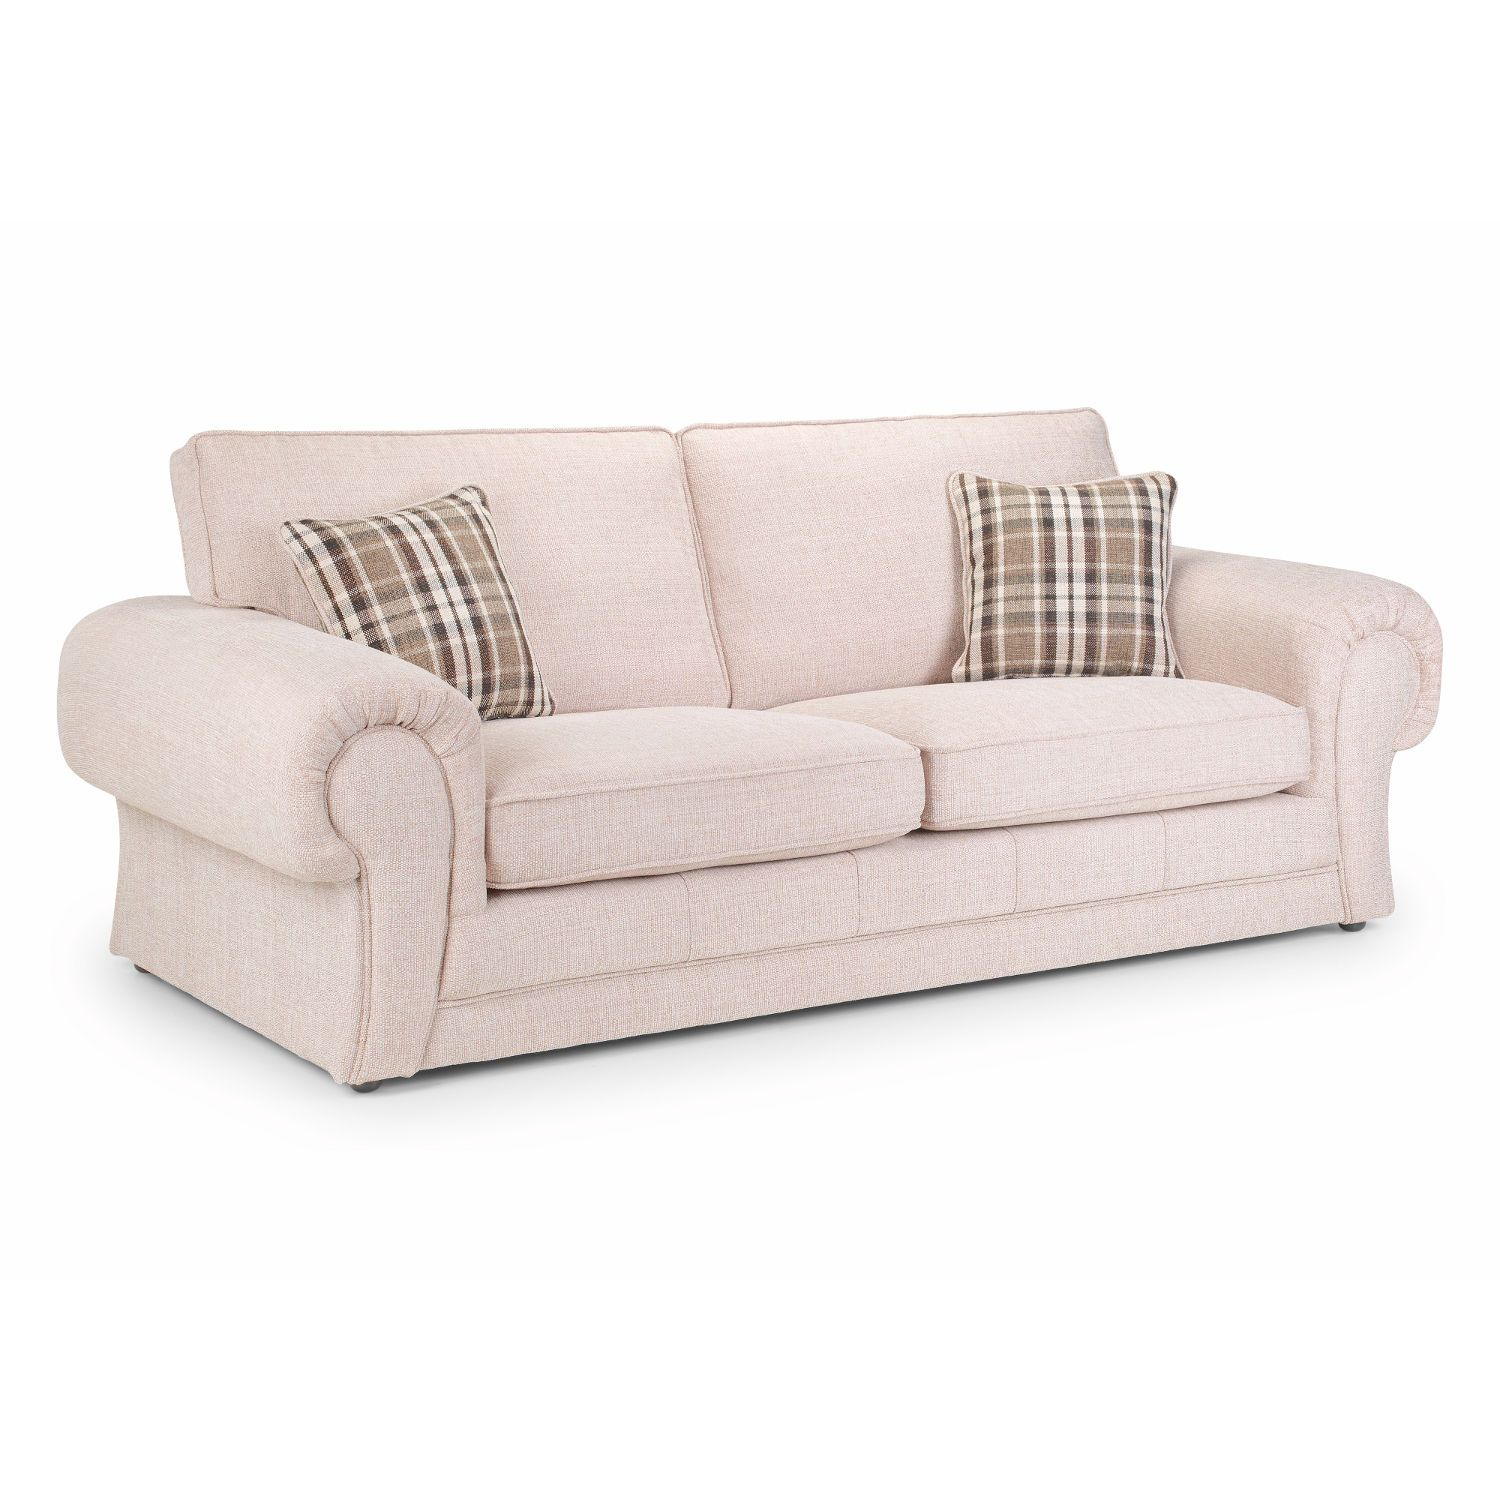 sofas delivered next day living room sofa design chiltern 3 seater  delivery